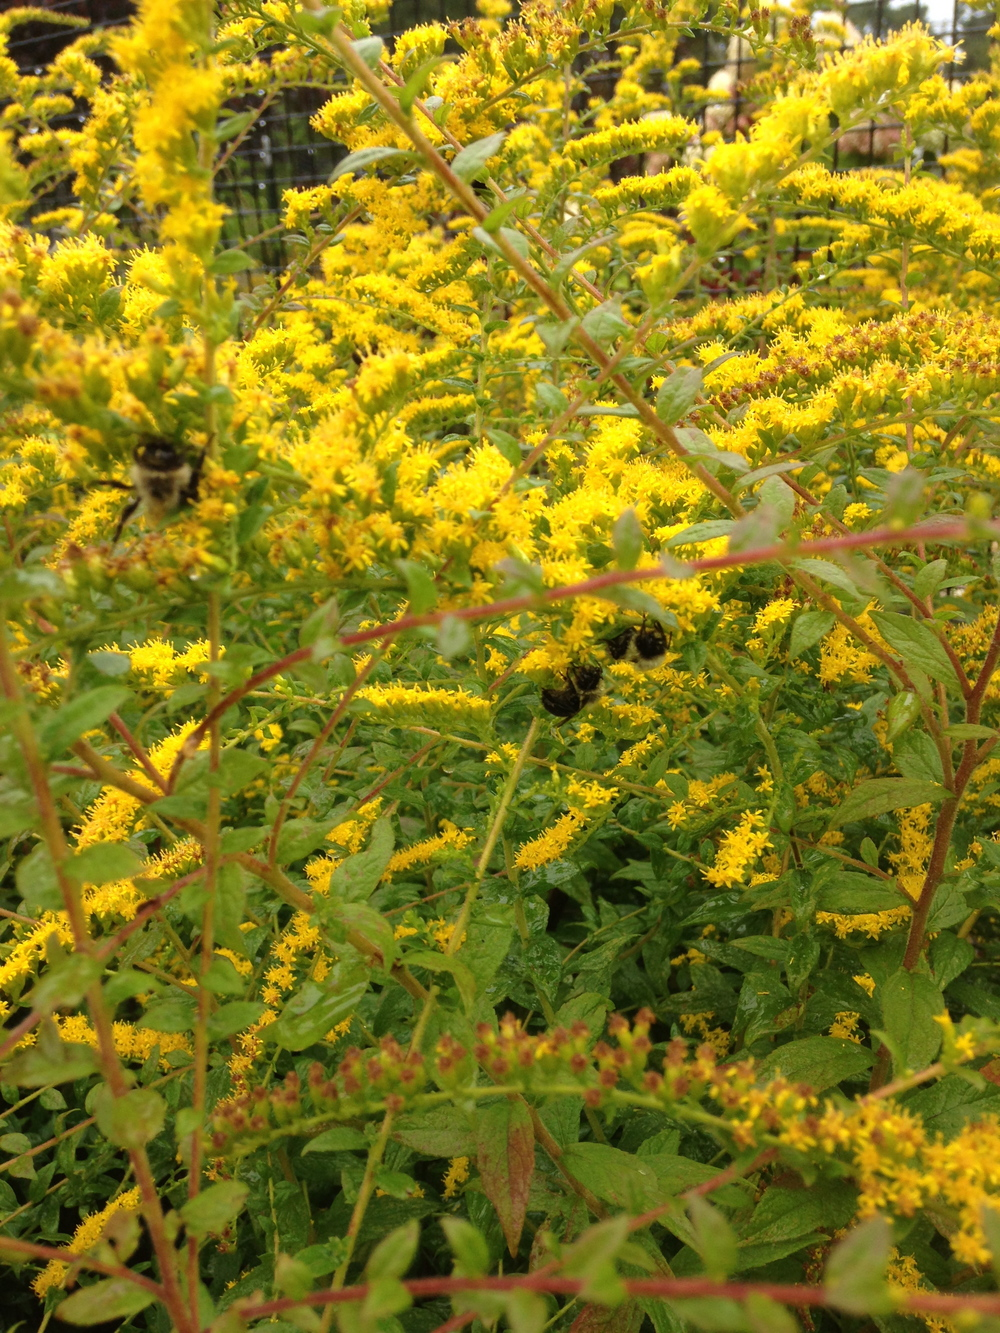 Three bumble bees loving the goldenrod.